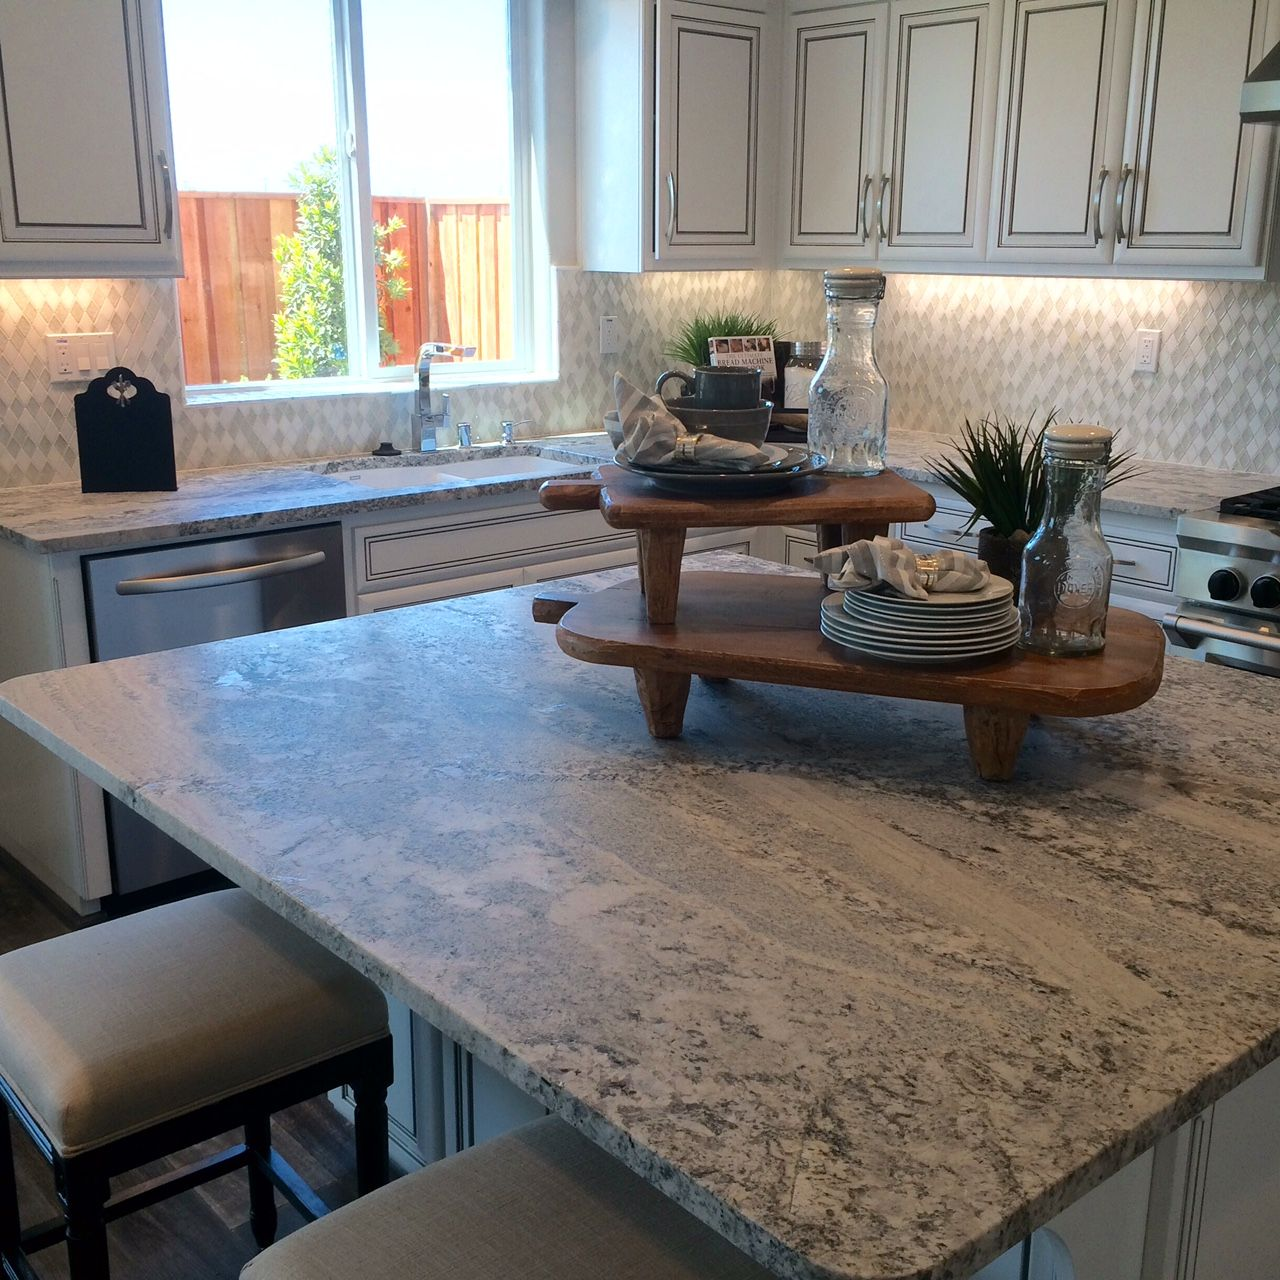 Granite Kitchen Countertops With Backsplash: Pin By Arizona Tile On Gorgeous Granite In 2019